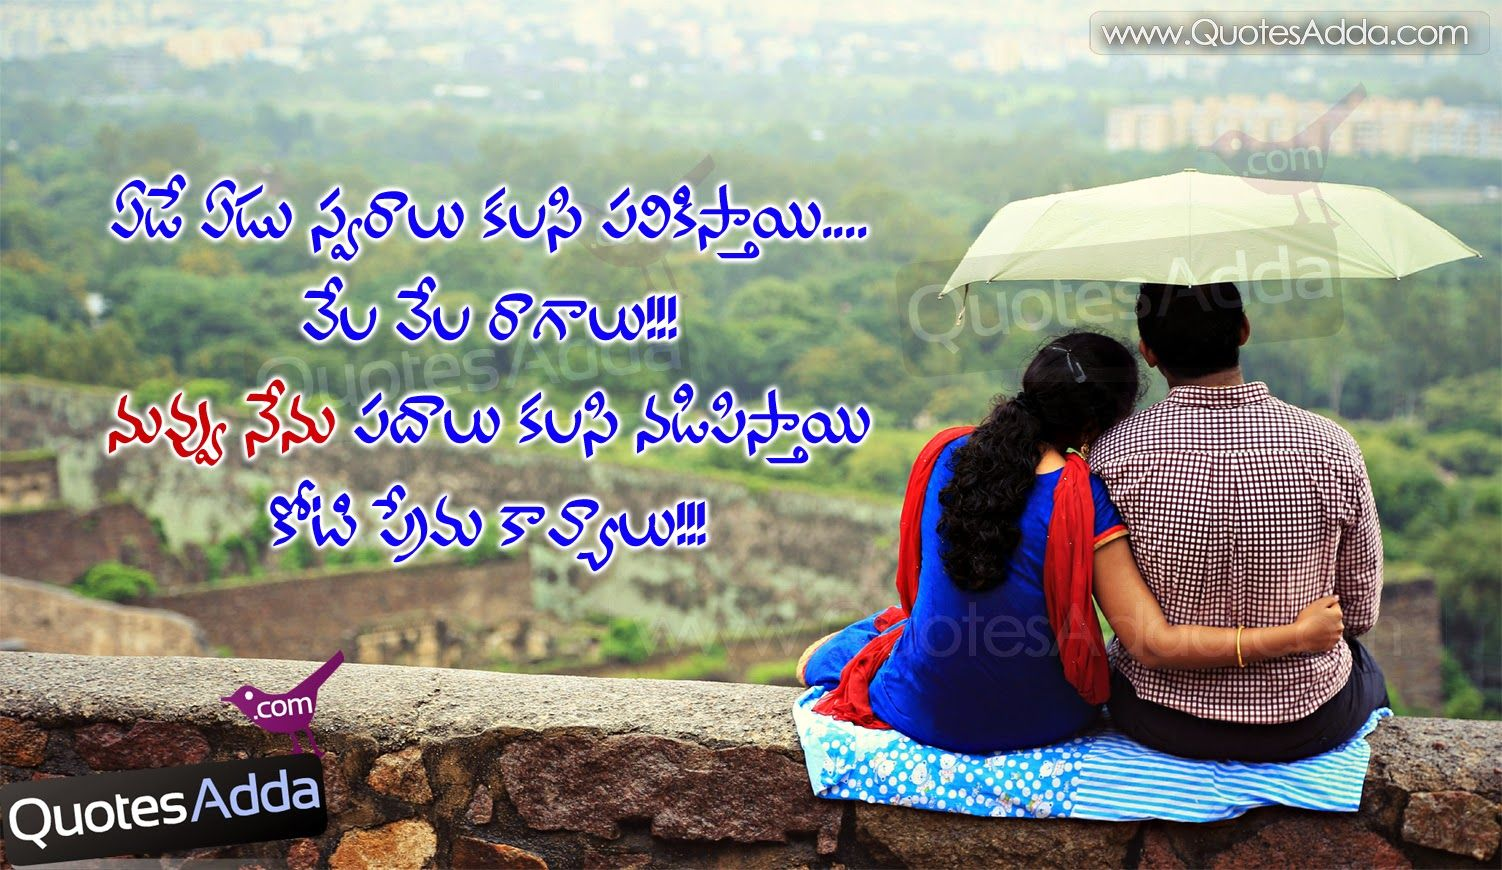 funny love proposal quotes Best Telugu Beautiful Love Quotations Wallpapers QuotesAdda pictures